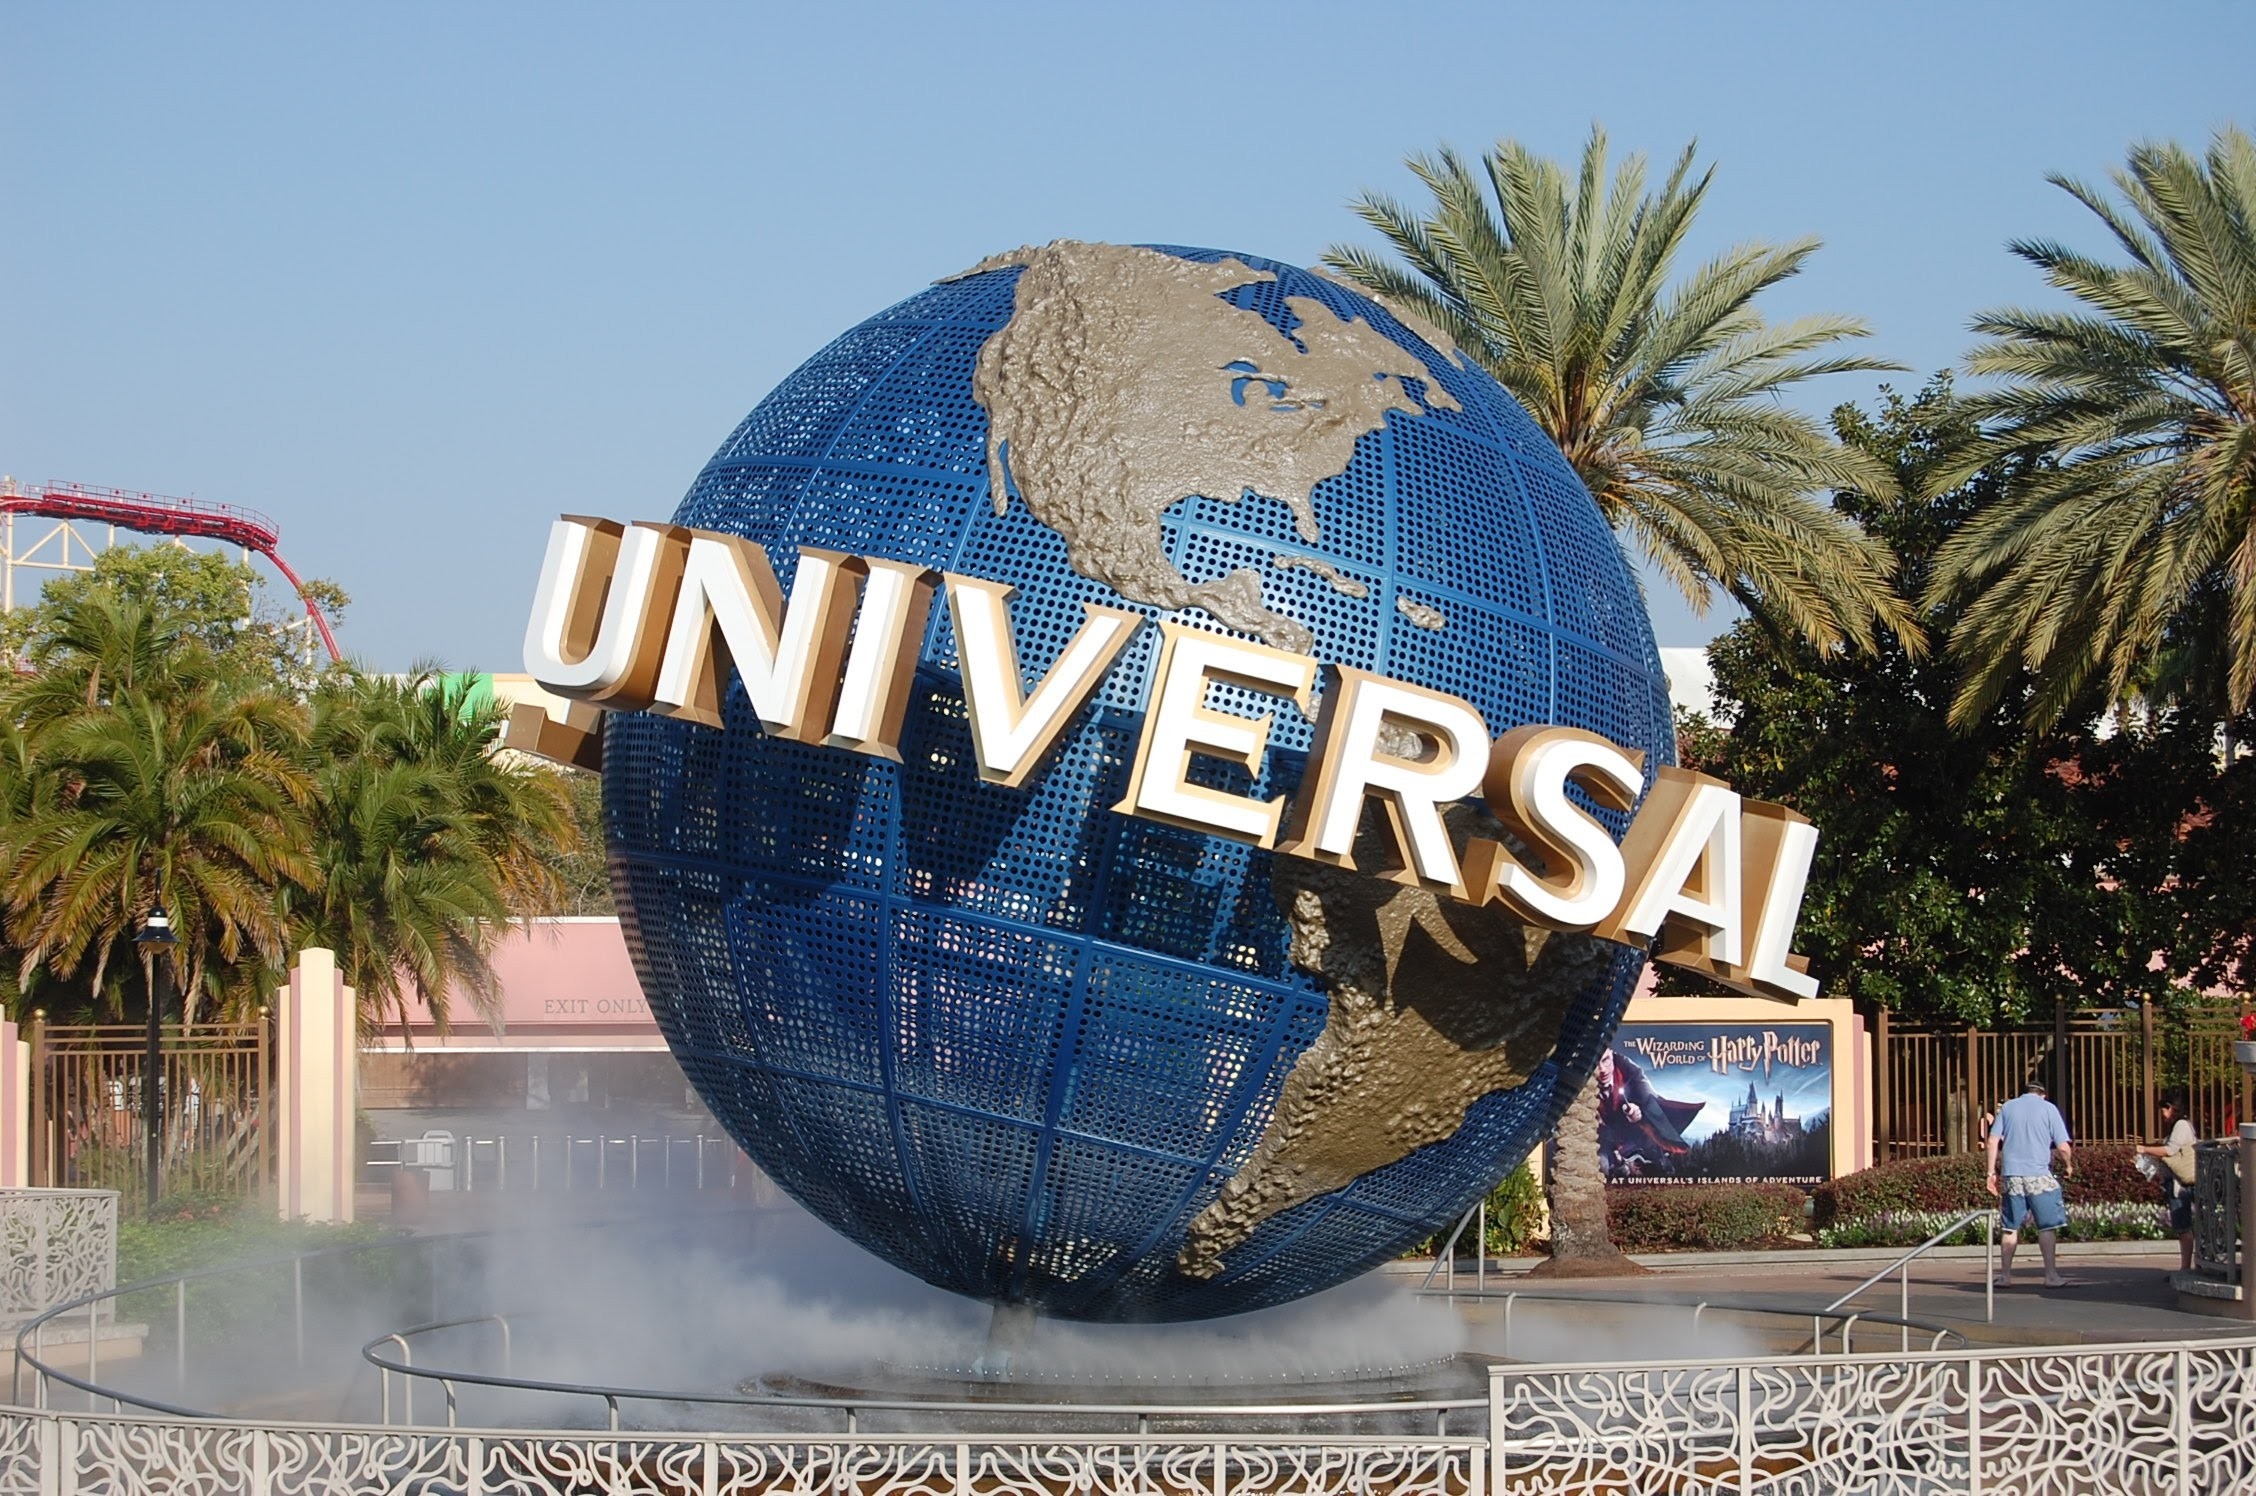 Oct 30,  · Overview. Featuring four exciting theme parks, two water parks, an entertainment complex and much more in Orlando, Florida, Walt Disney World® Resort is a world-renowned attraction themed around classic Disney fairytales and newly popular Disney stories.